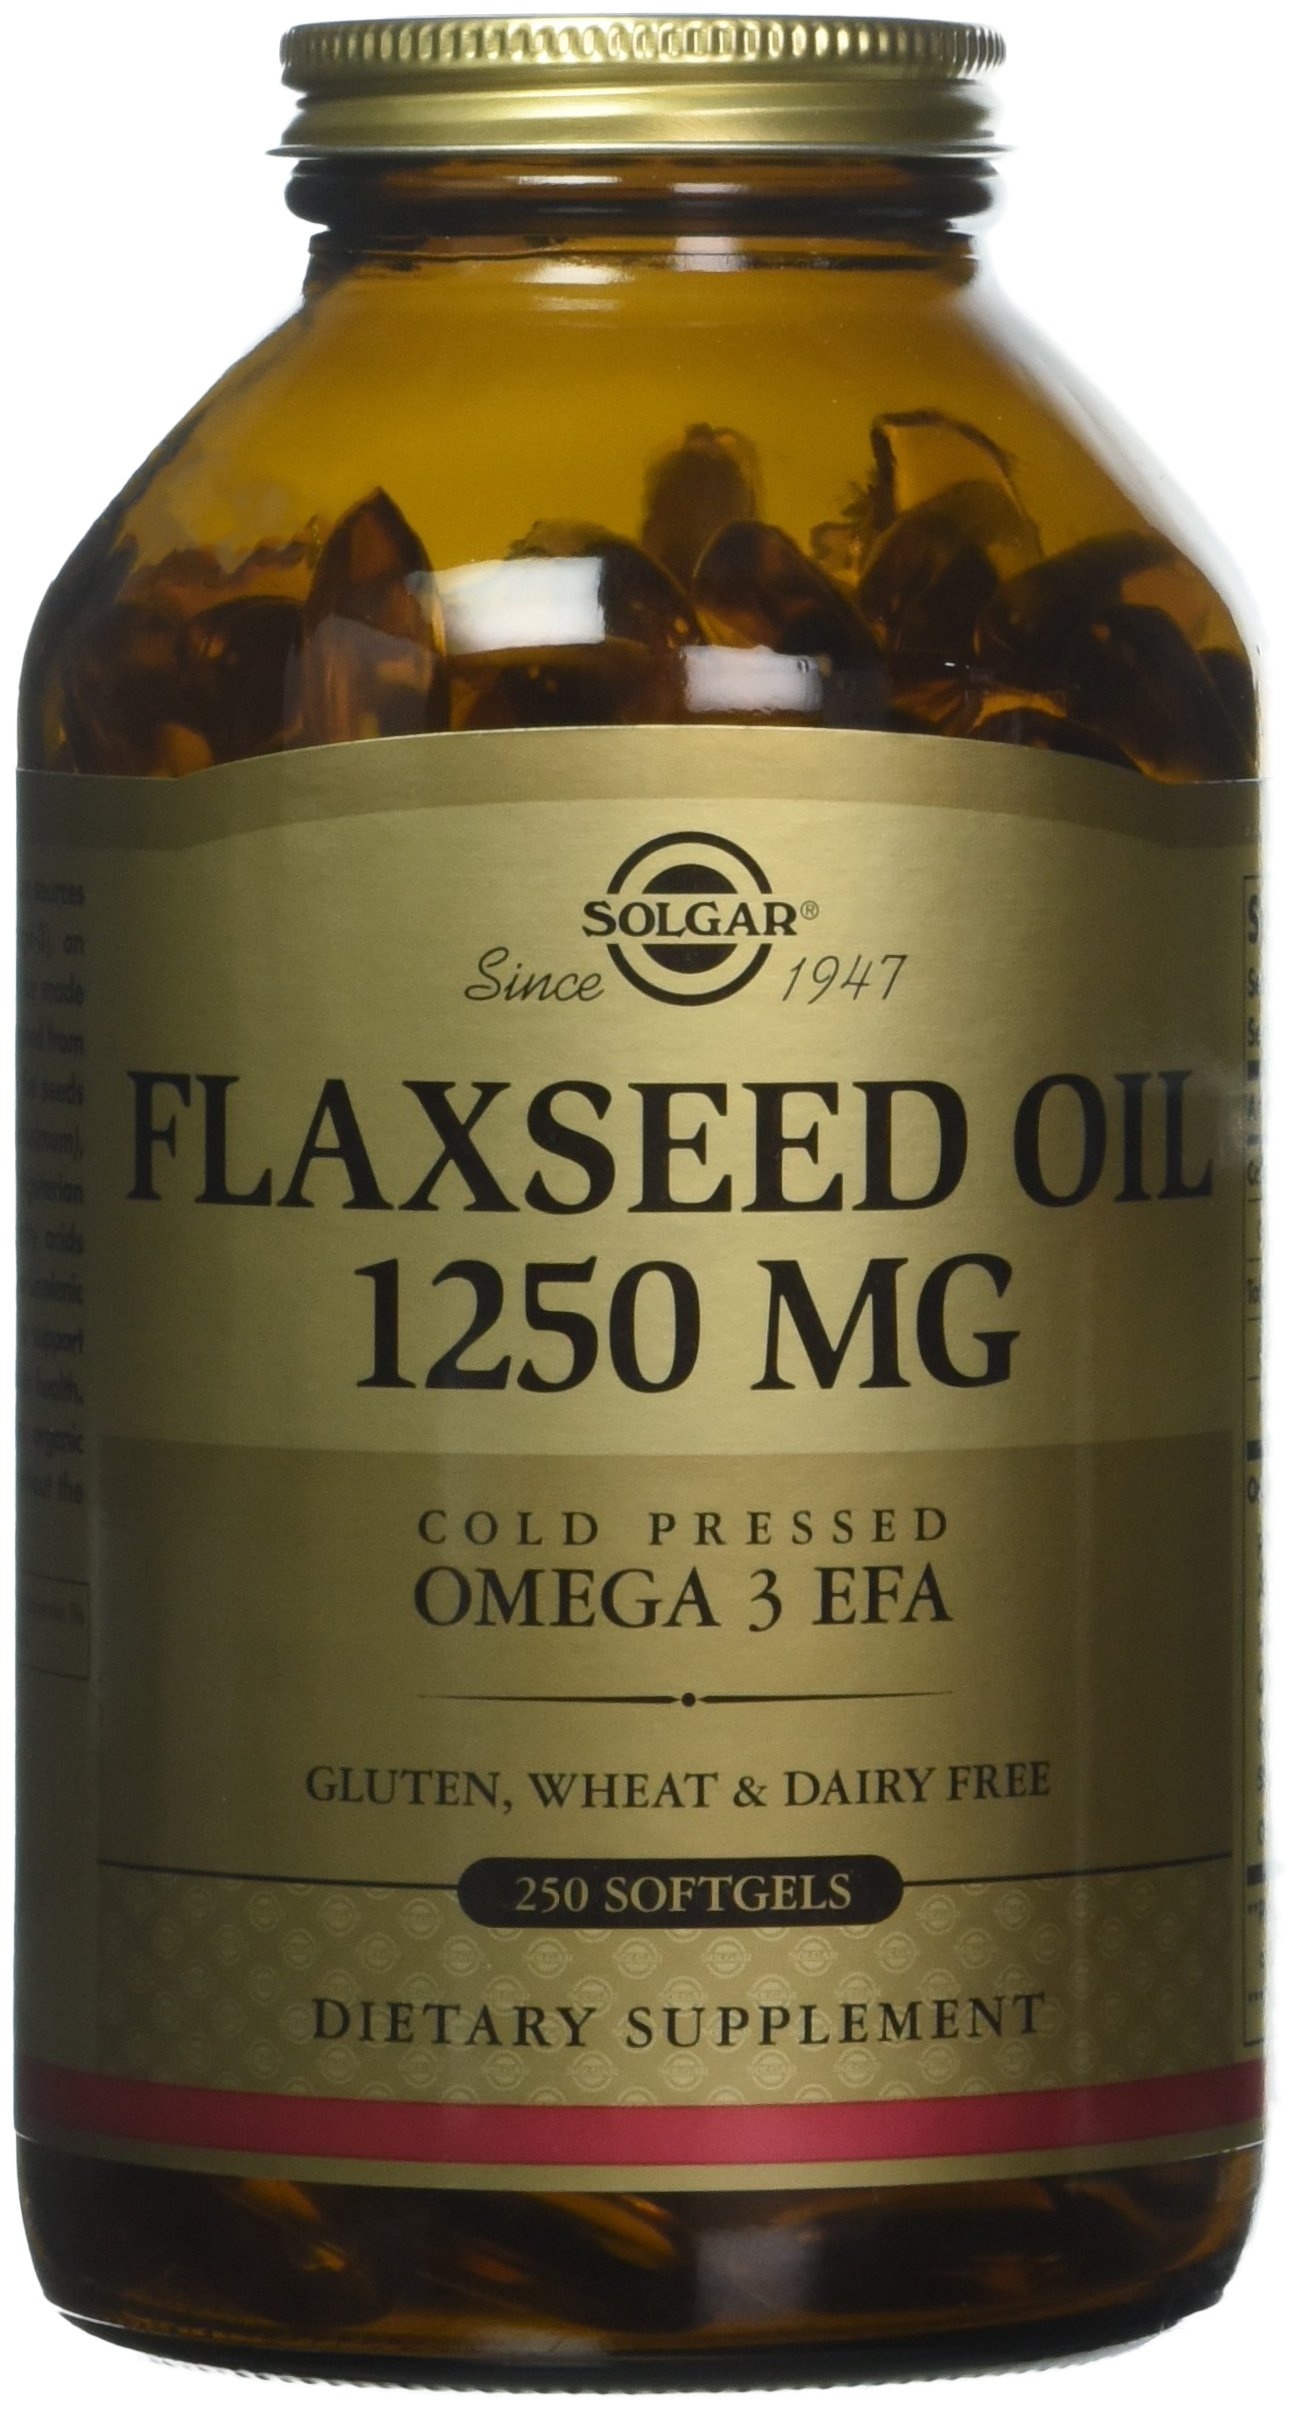 Solgar – Flaxseed Oil 1250 mg, 250 Softgels